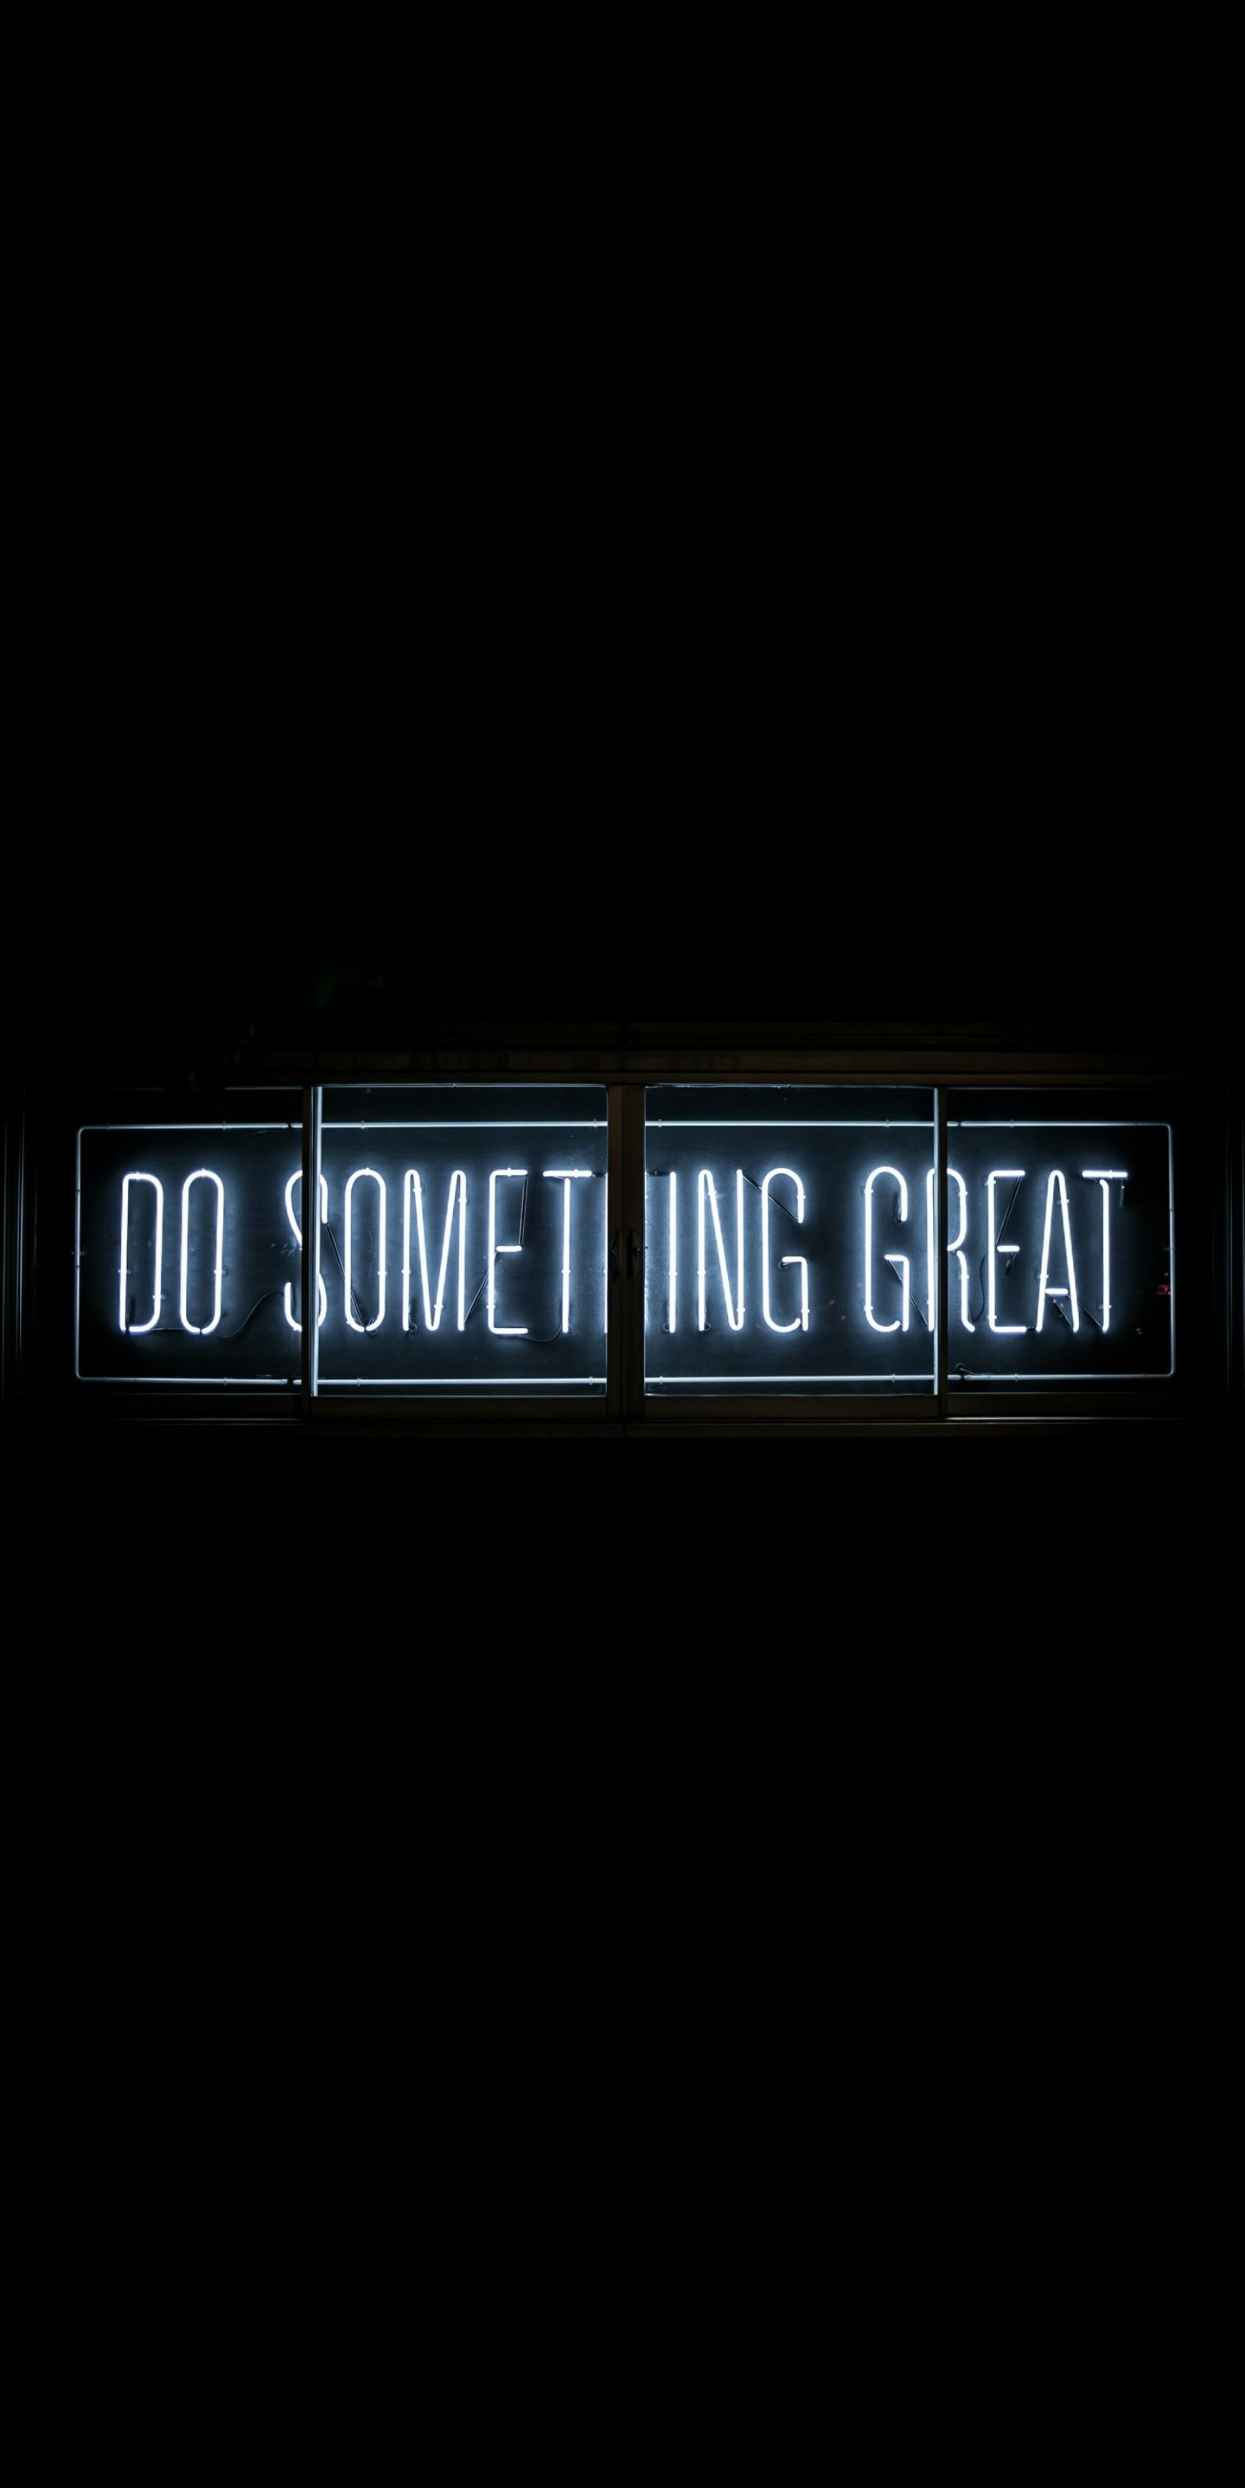 Insperational Quote Wallpaper Do Something Great Iphone Wallpaper Iphone Wallpapers